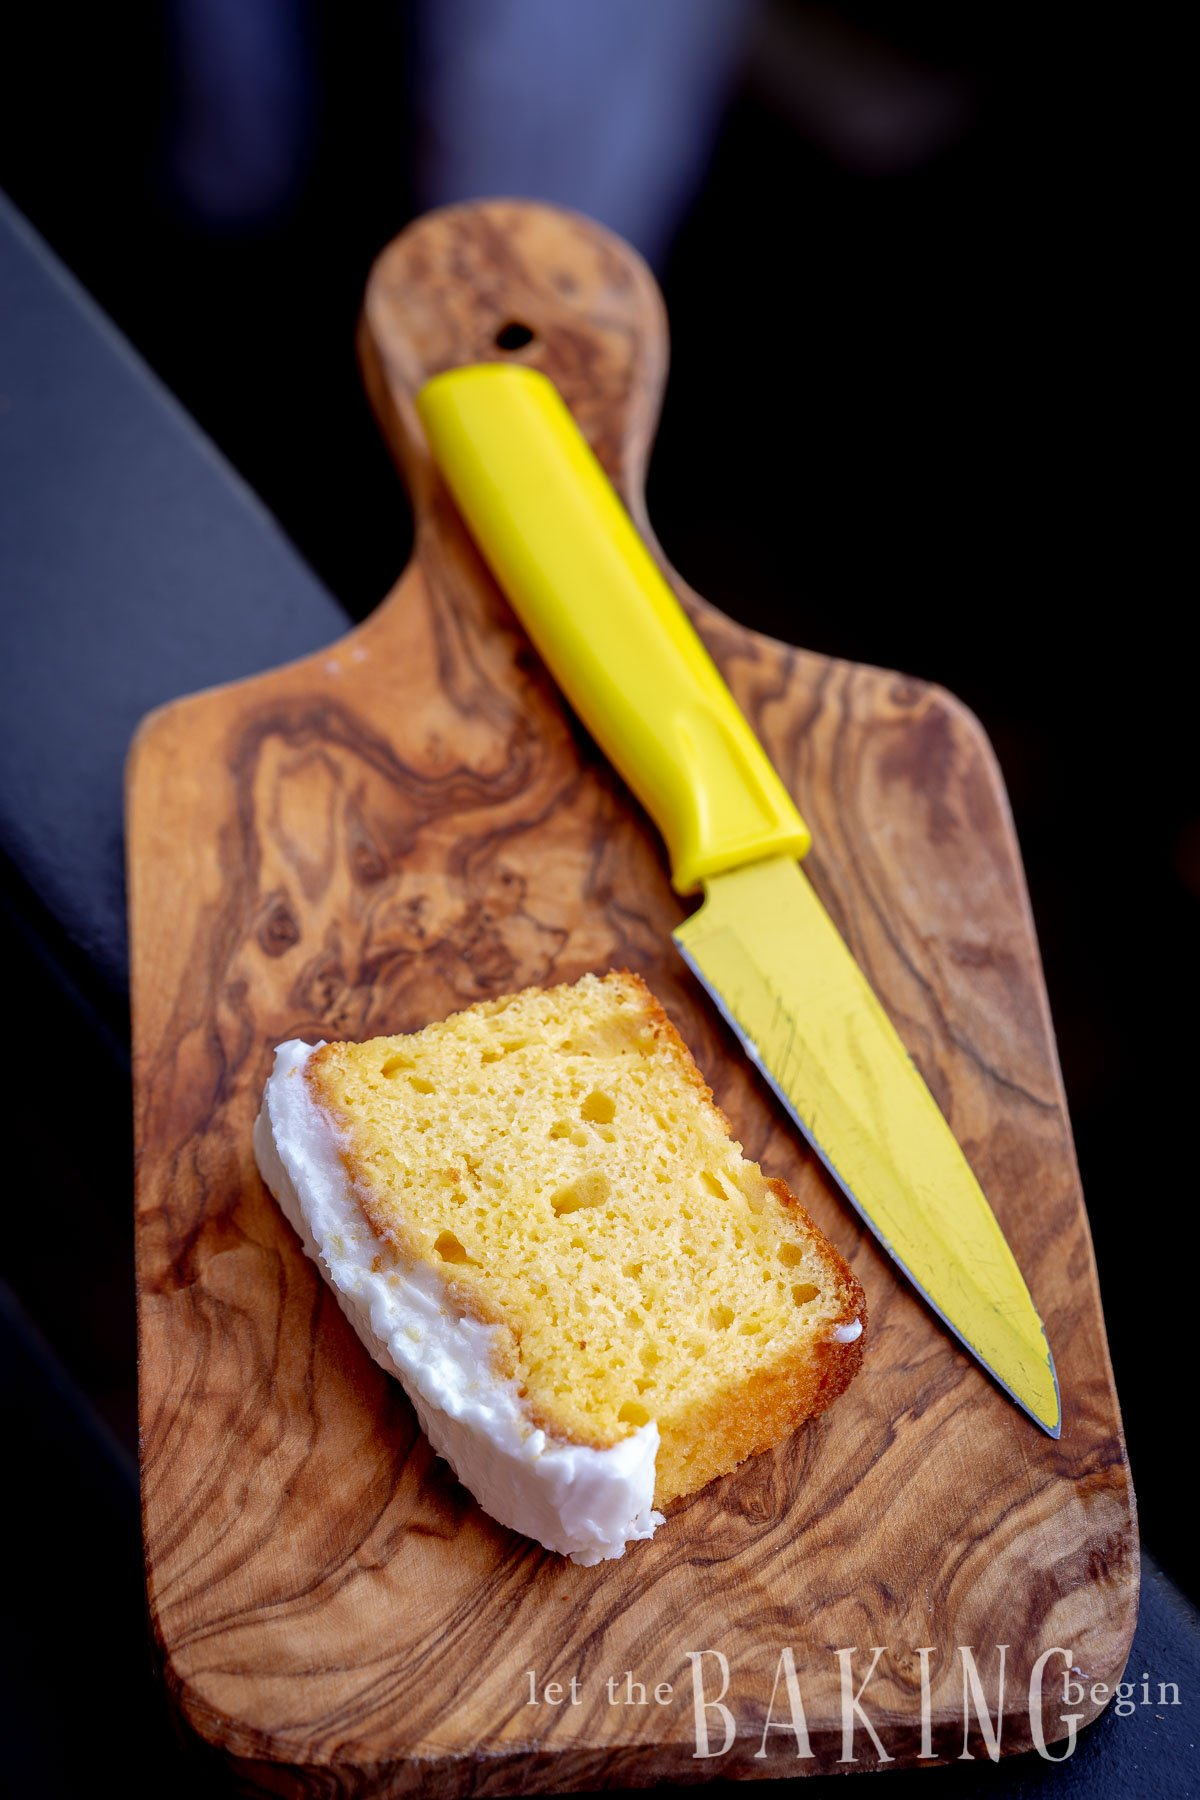 A slice of lemon loaf cake on a cutting board with a knife.